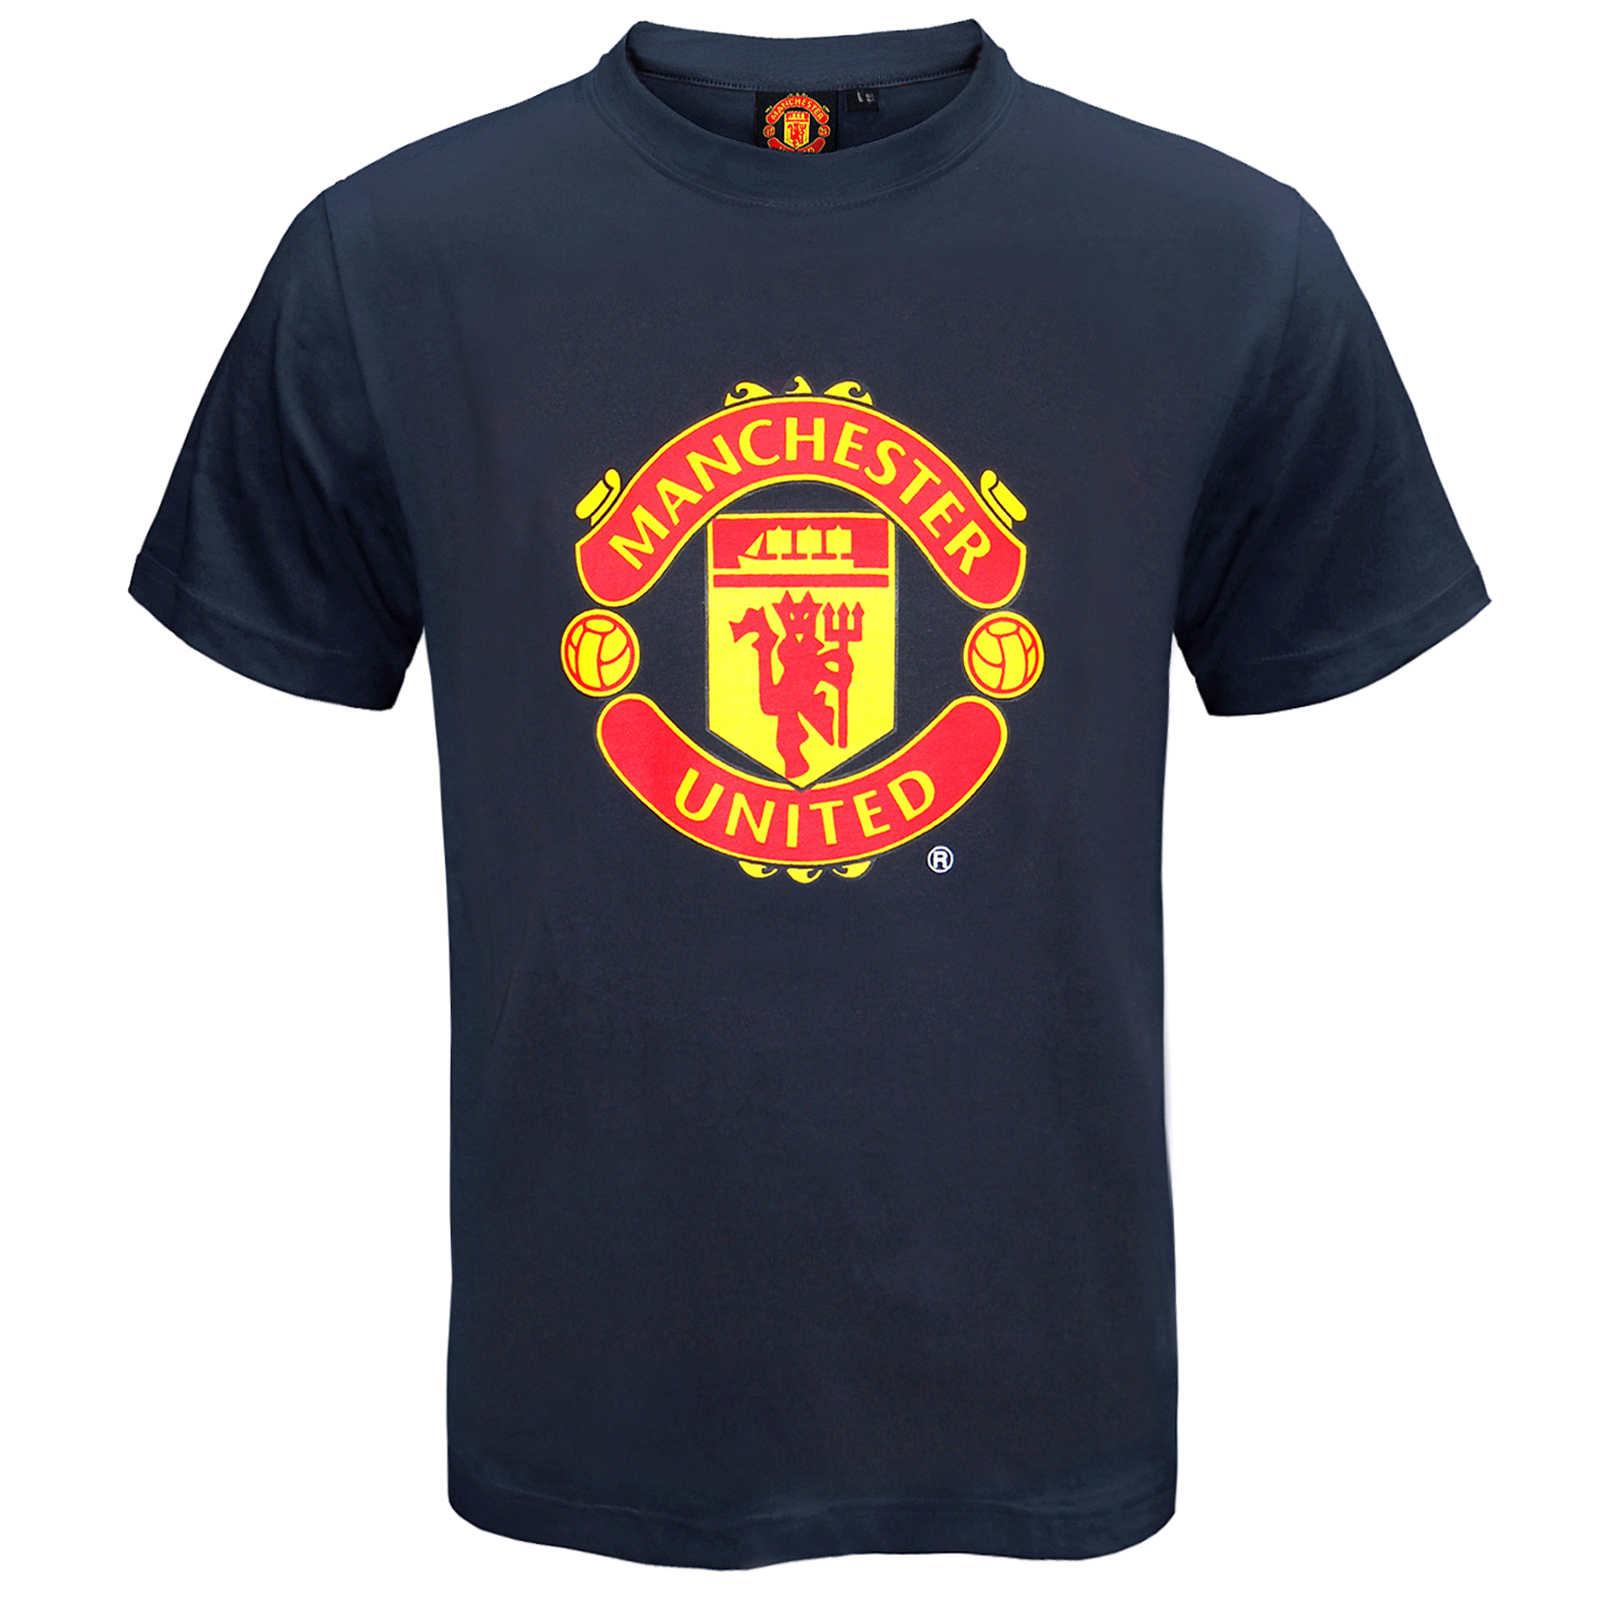 Manchester-United-FC-Official-Football-Gift-Kids-Crest-T-Shirt